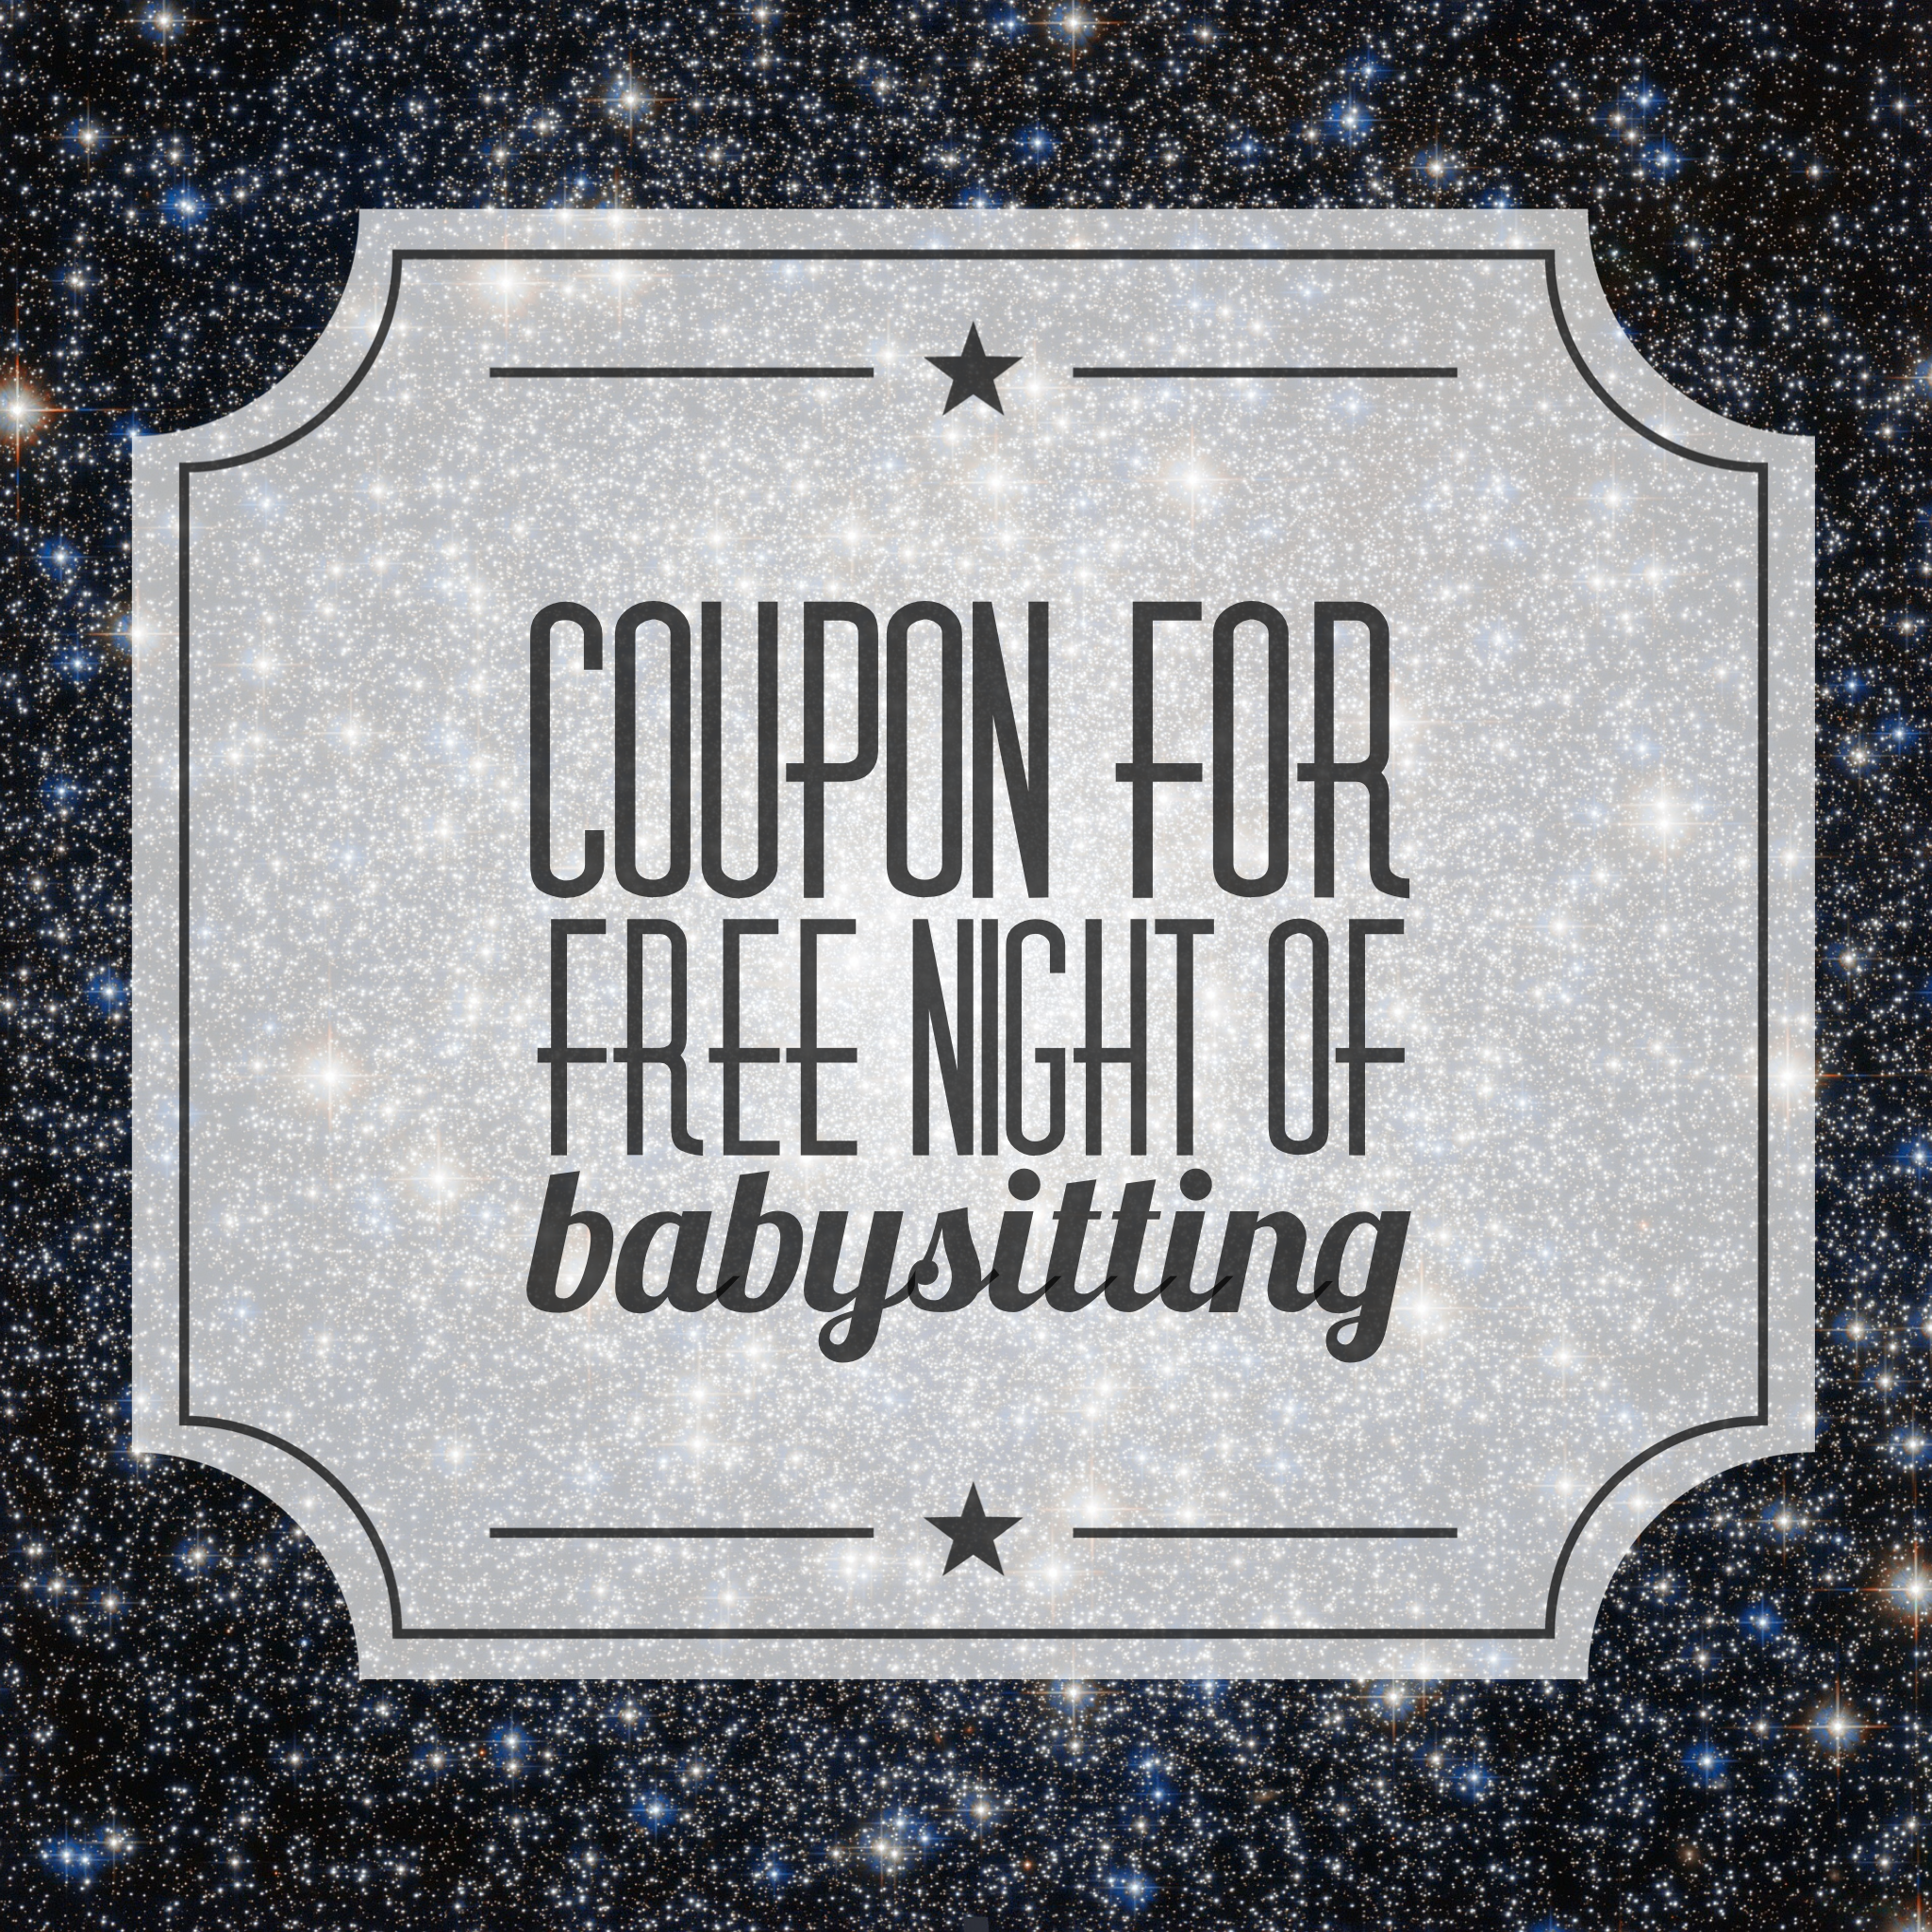 image about Babysitting Coupon Printable titled The Reward of Babysitting My Nuts Lucky Lifetime!